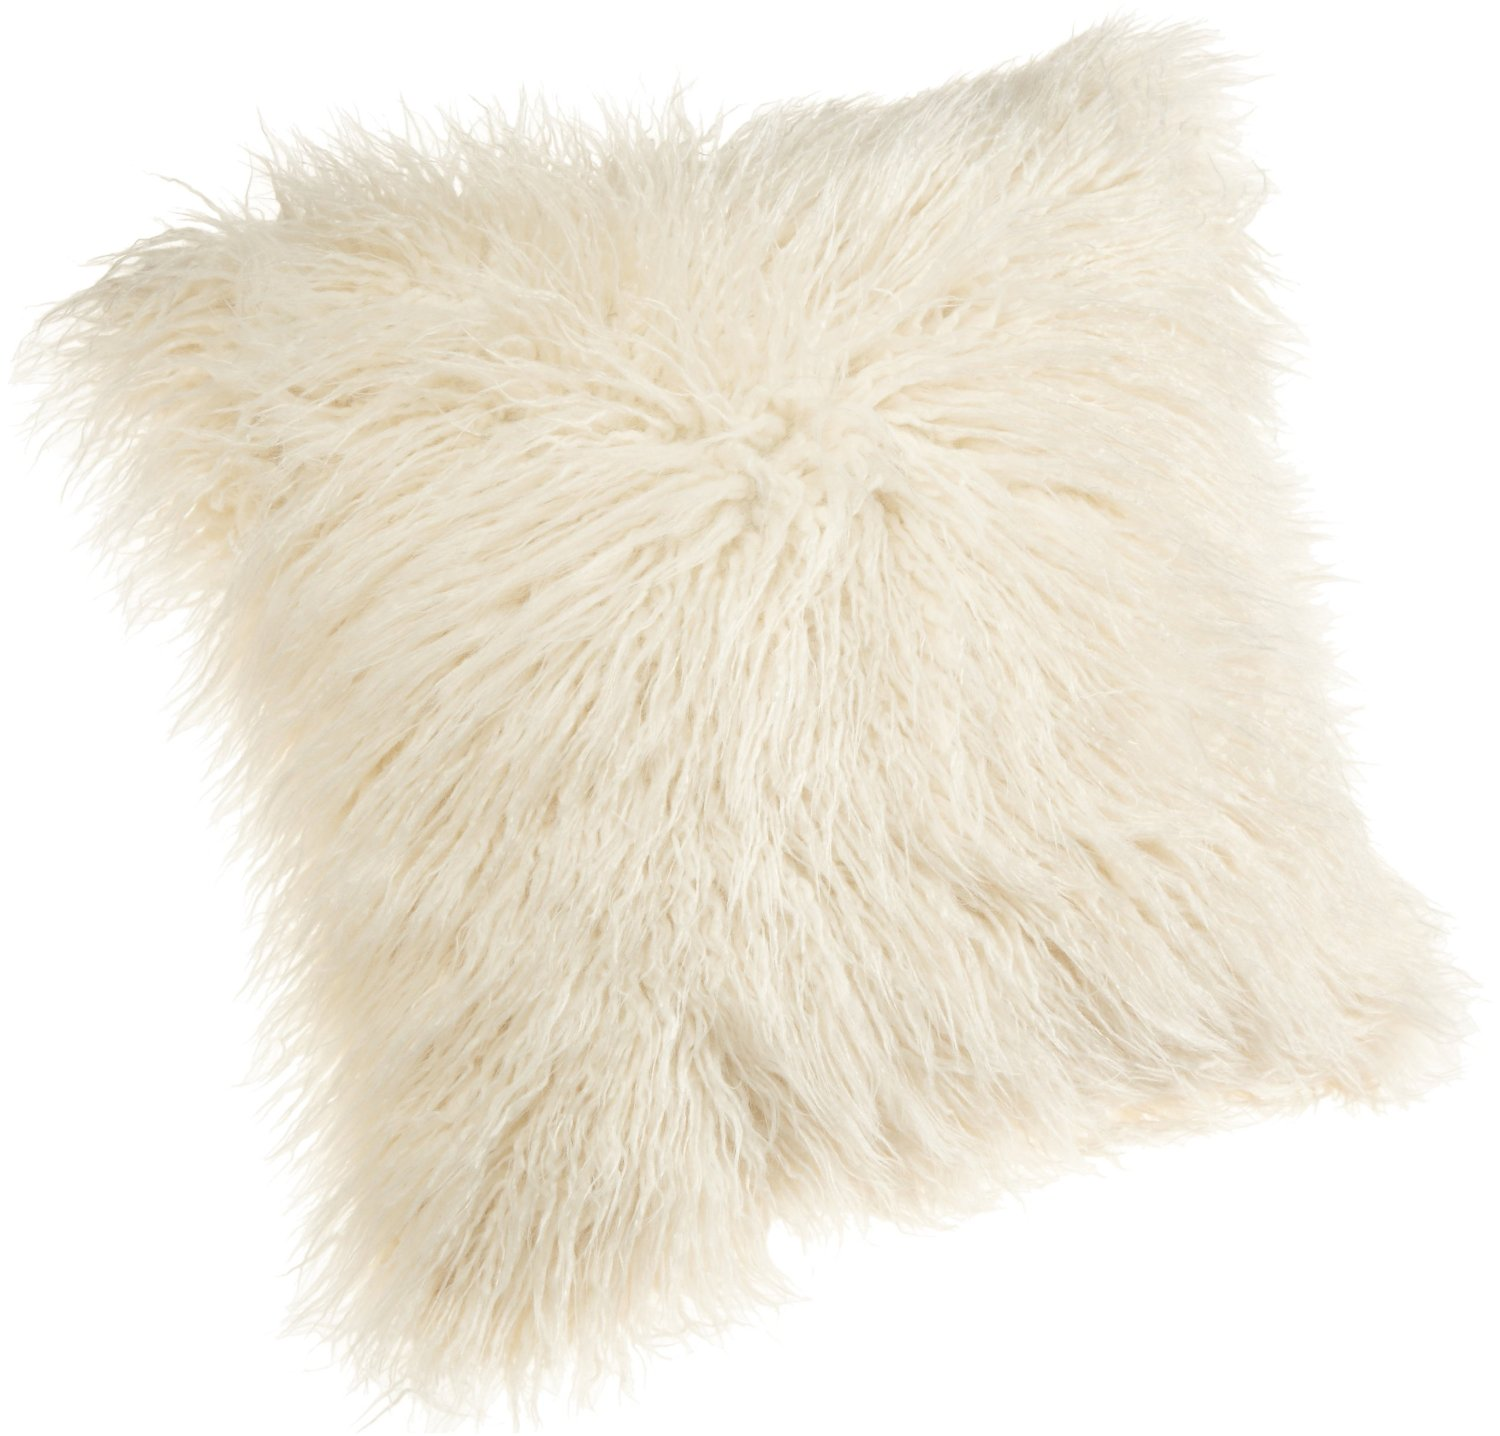 Luxe Report: Designing the New Digs: Pillows Galore